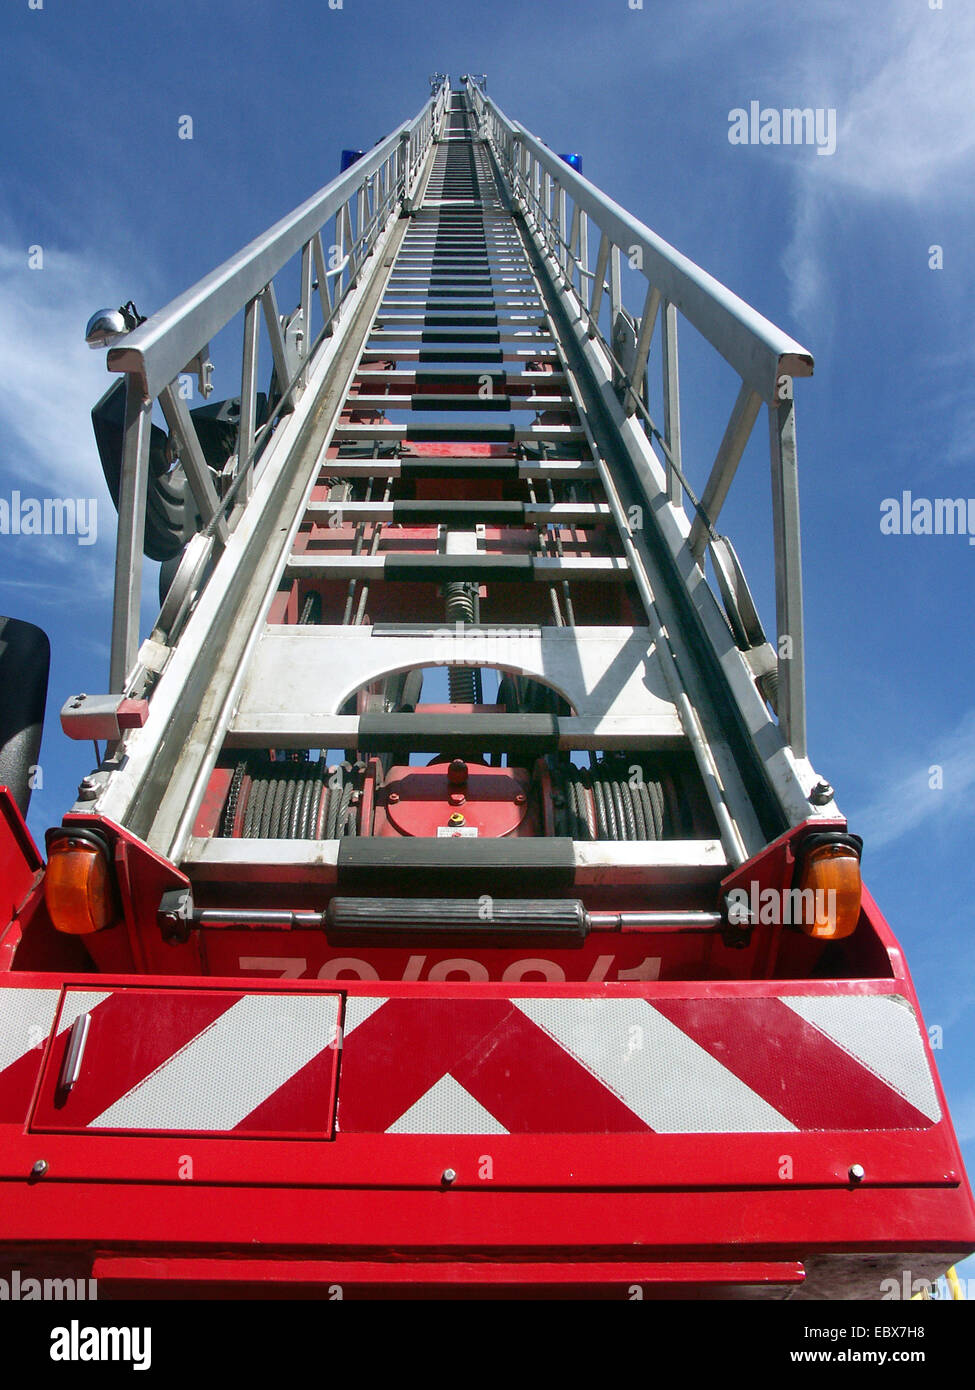 turntable ladder rise up to the sky - Stock Image